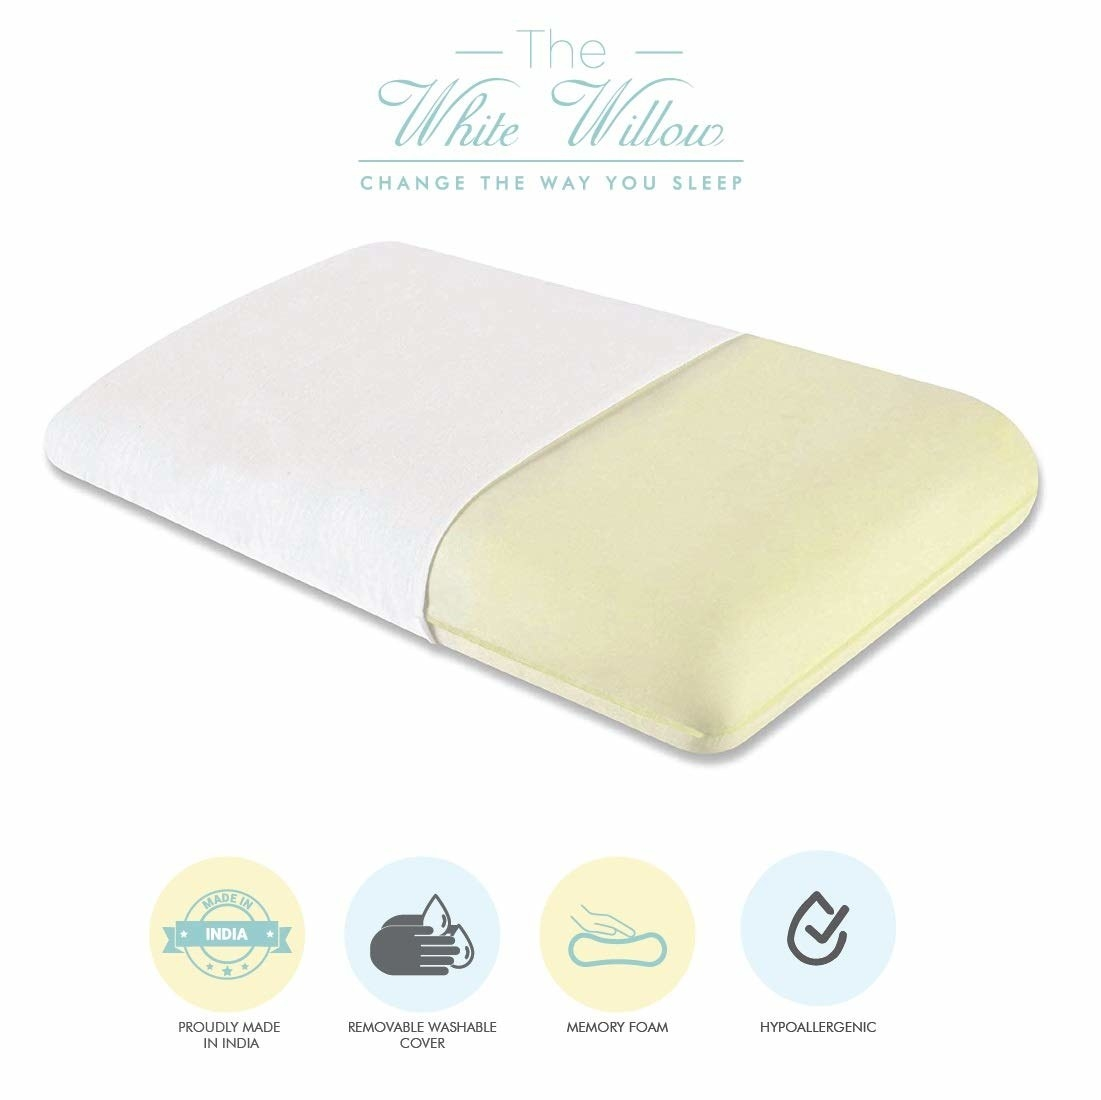 Memory foam pillow with the benefits of using 1